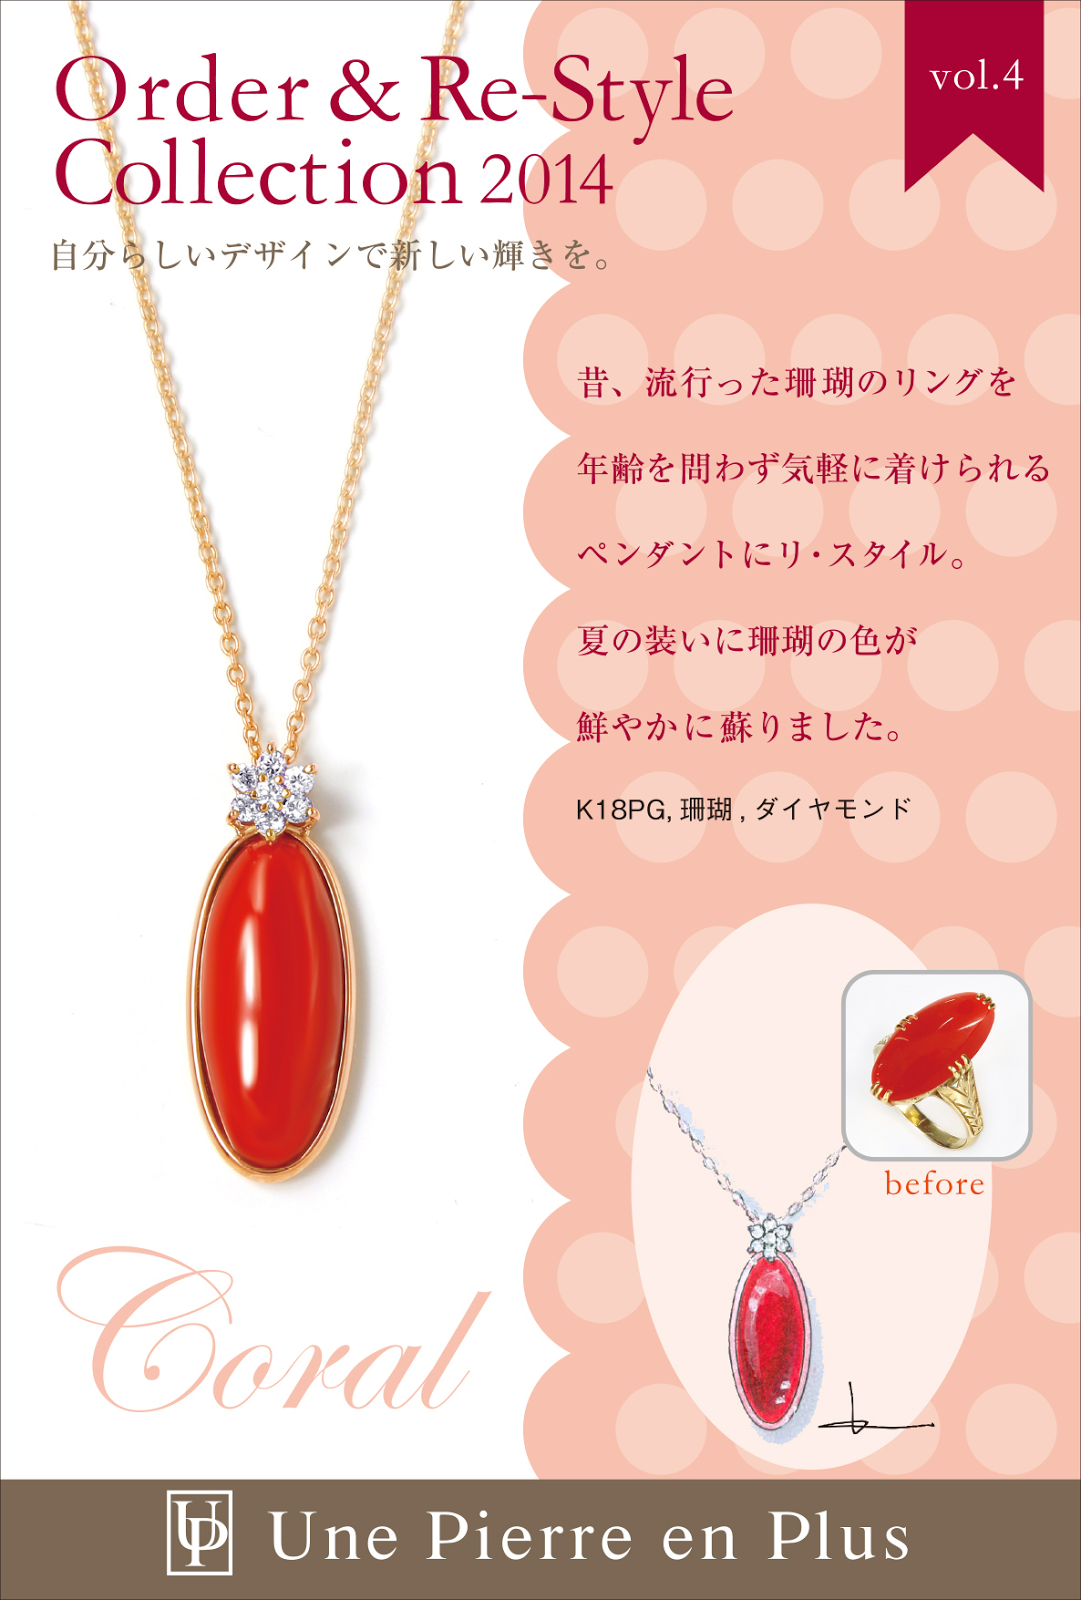 Order&Re-Style Collection 2014 vol.4 サンゴペンダントのリスタイル事例が載ったDM